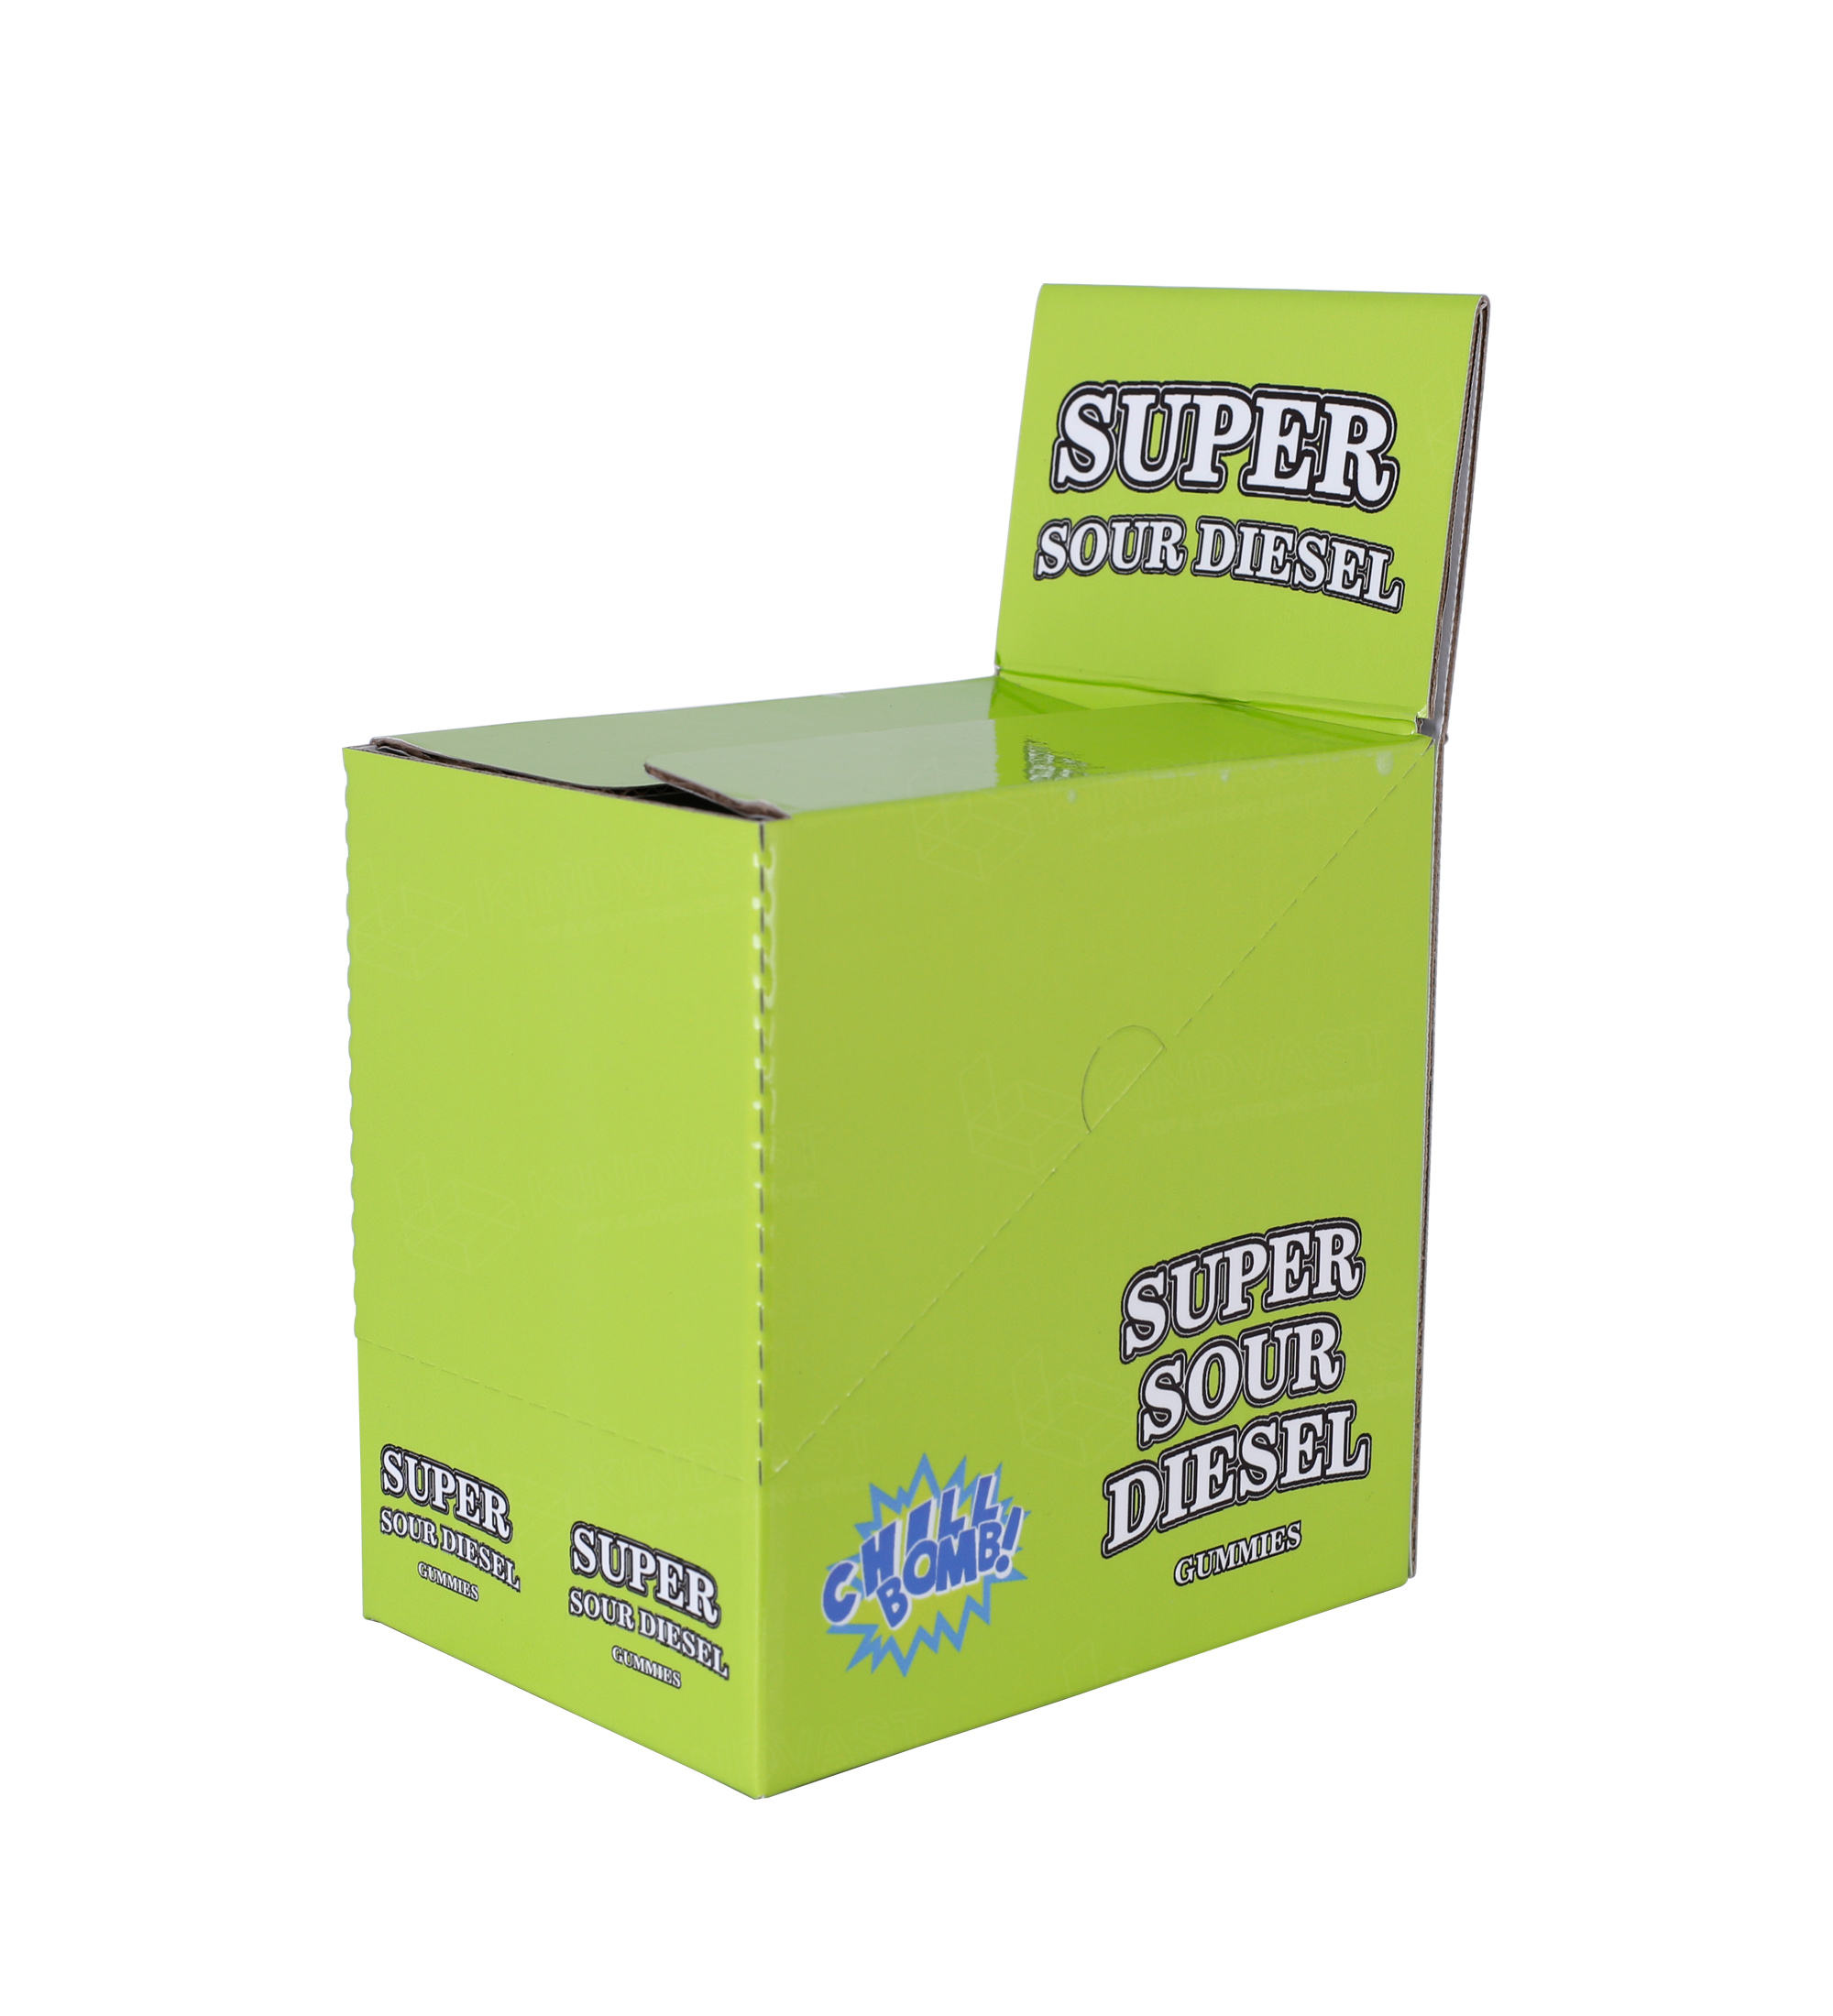 Customized Packaging Box Chewing Gum Retail Box Cardboard Custom Printed Retail Ready Box Counter Display Case